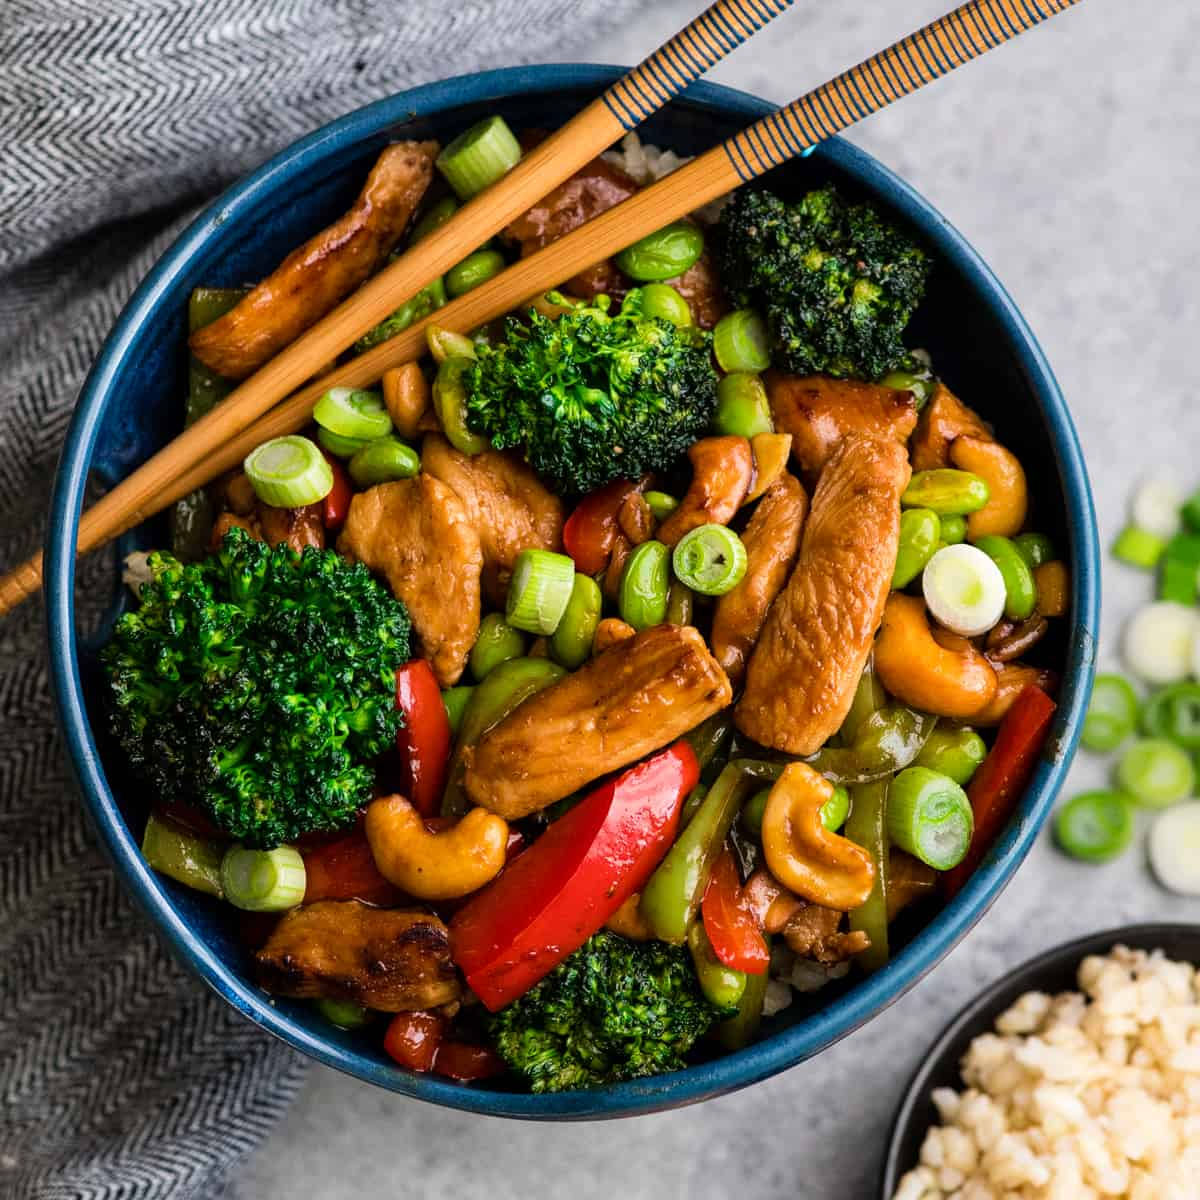 Overhead view of Cashew Chicken Stir Fry Recipe in a blue bowl with chopsticks